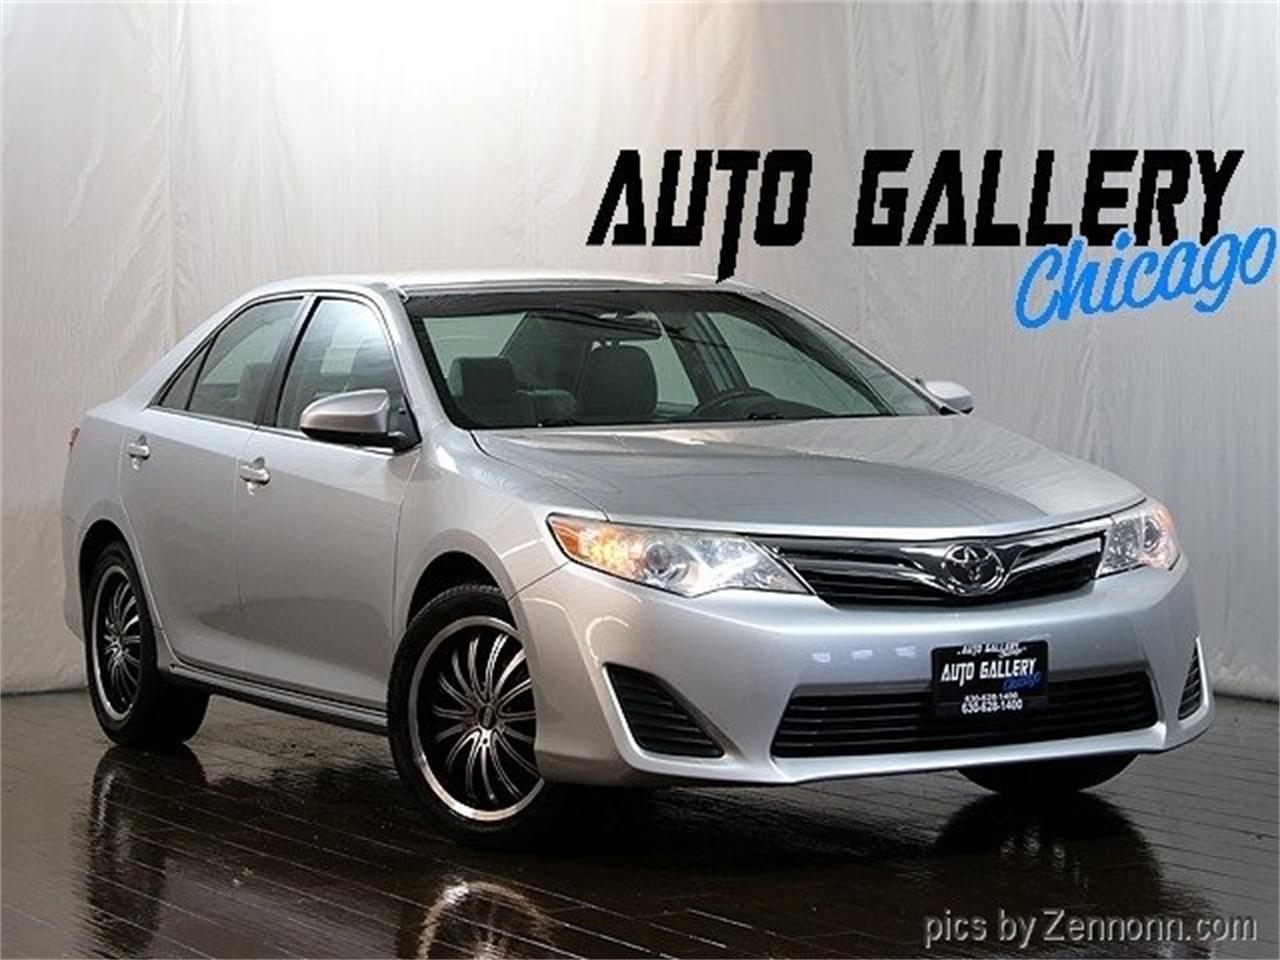 2012 Toyota Camry For Sale >> For Sale 2012 Toyota Camry In Addison Illinois